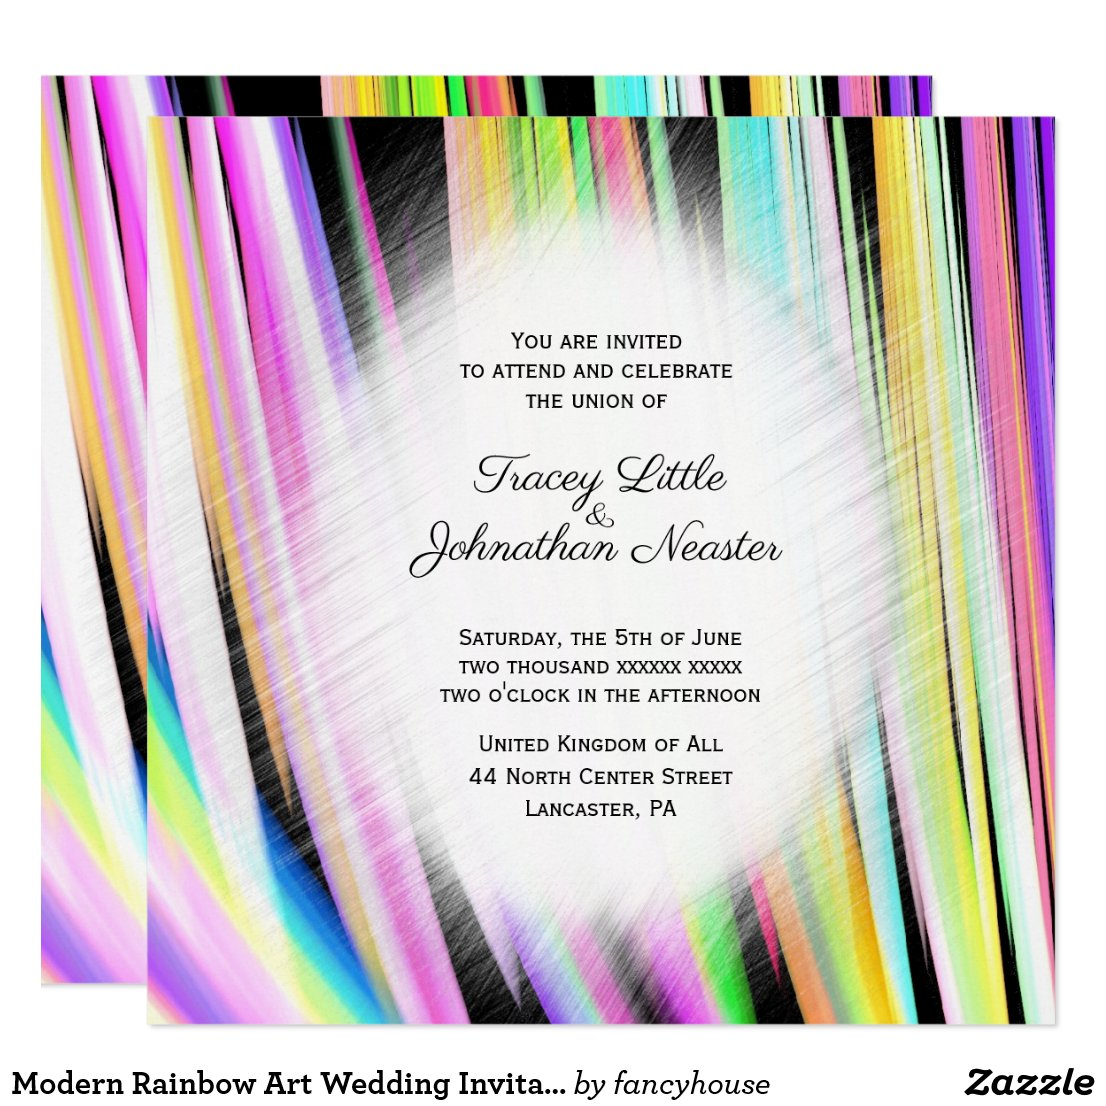 Modern Rainbow Art Wedding Invitations